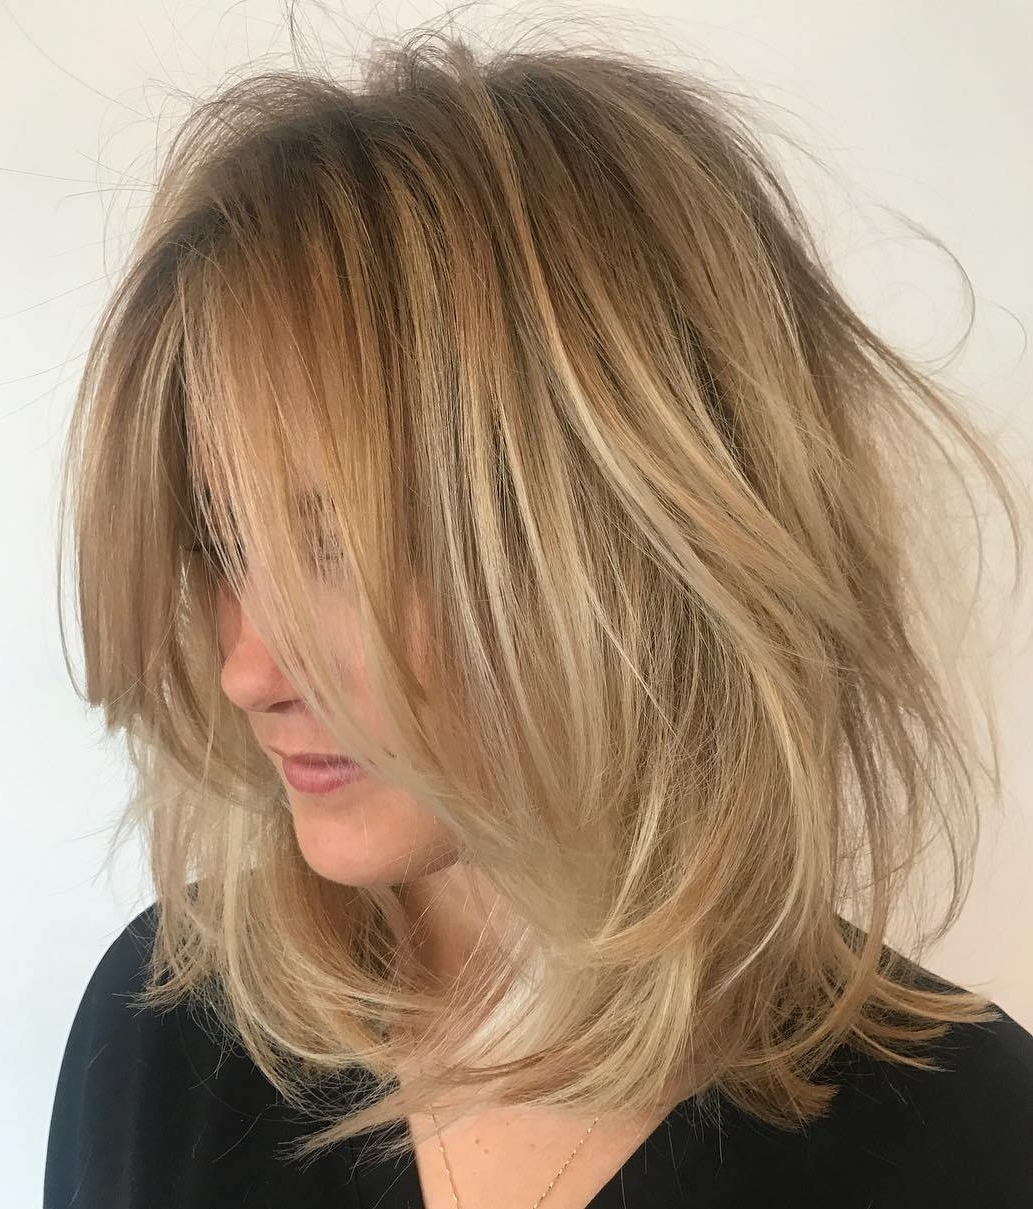 70 Devastatingly Cool Haircuts For Thin Hair Throughout Famous Striking Angled Platinum Lob Blonde Hairstyles (Gallery 19 of 20)